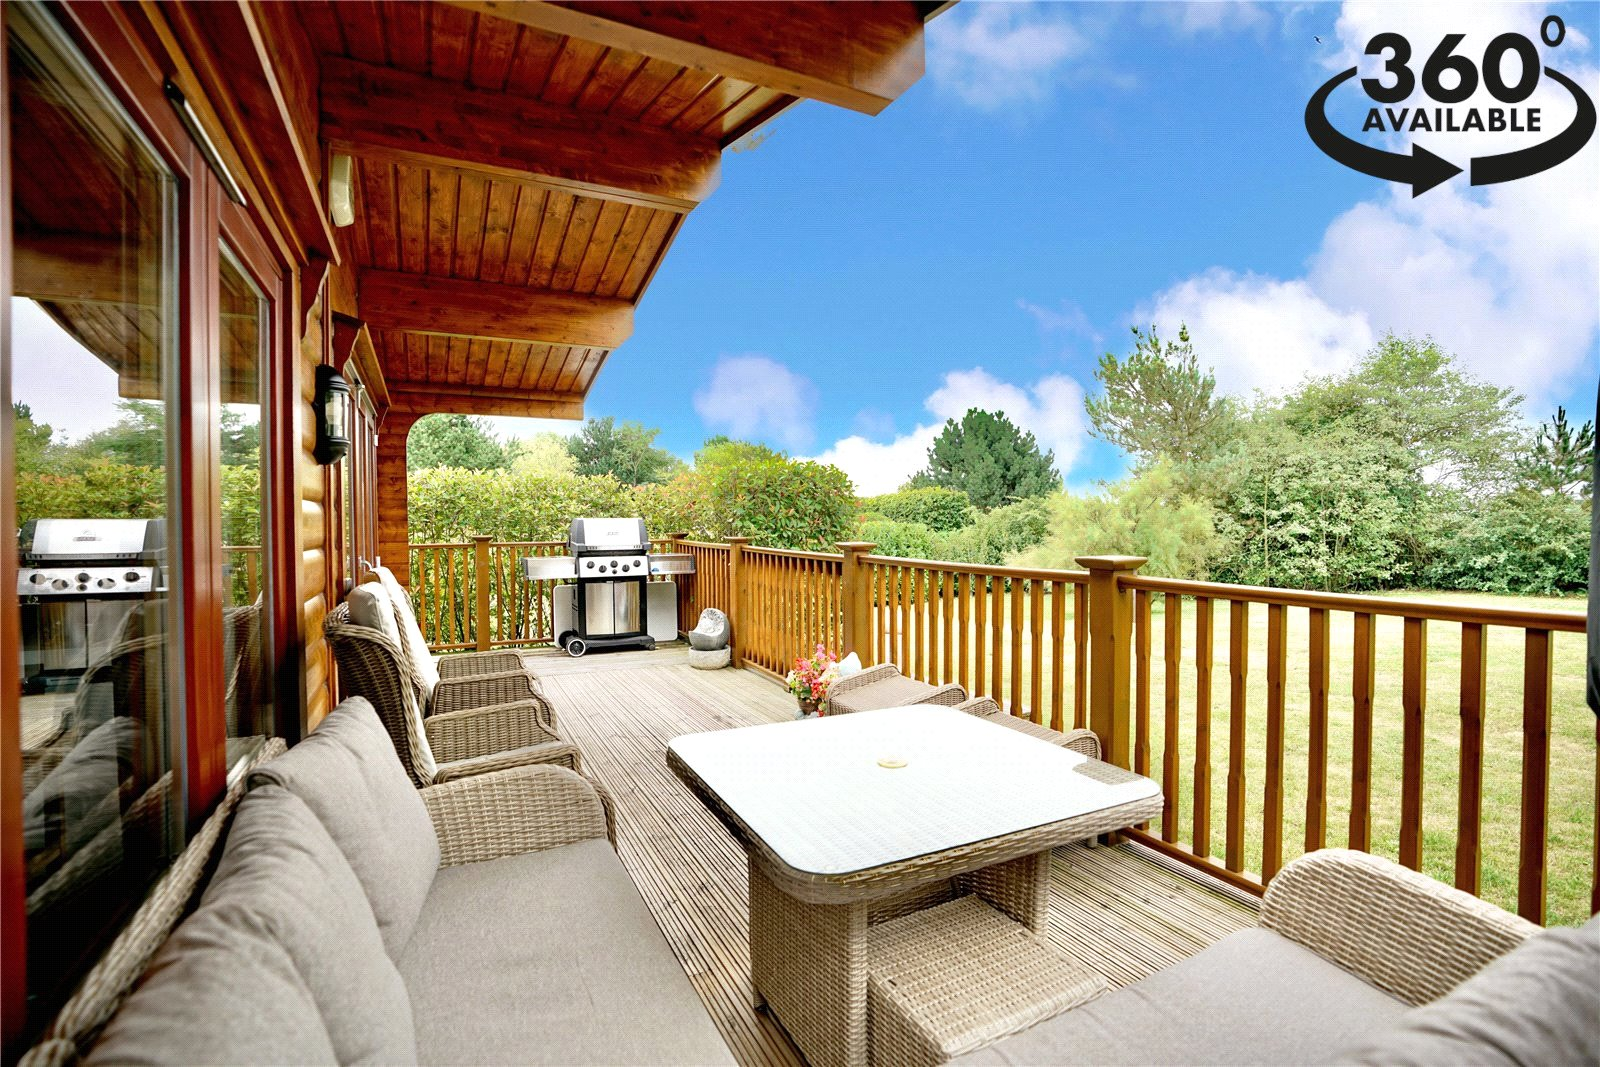 2 bed for sale in Drewels Lane, Abbotsley Country Homes, PE19 6XF  - Property Image 1